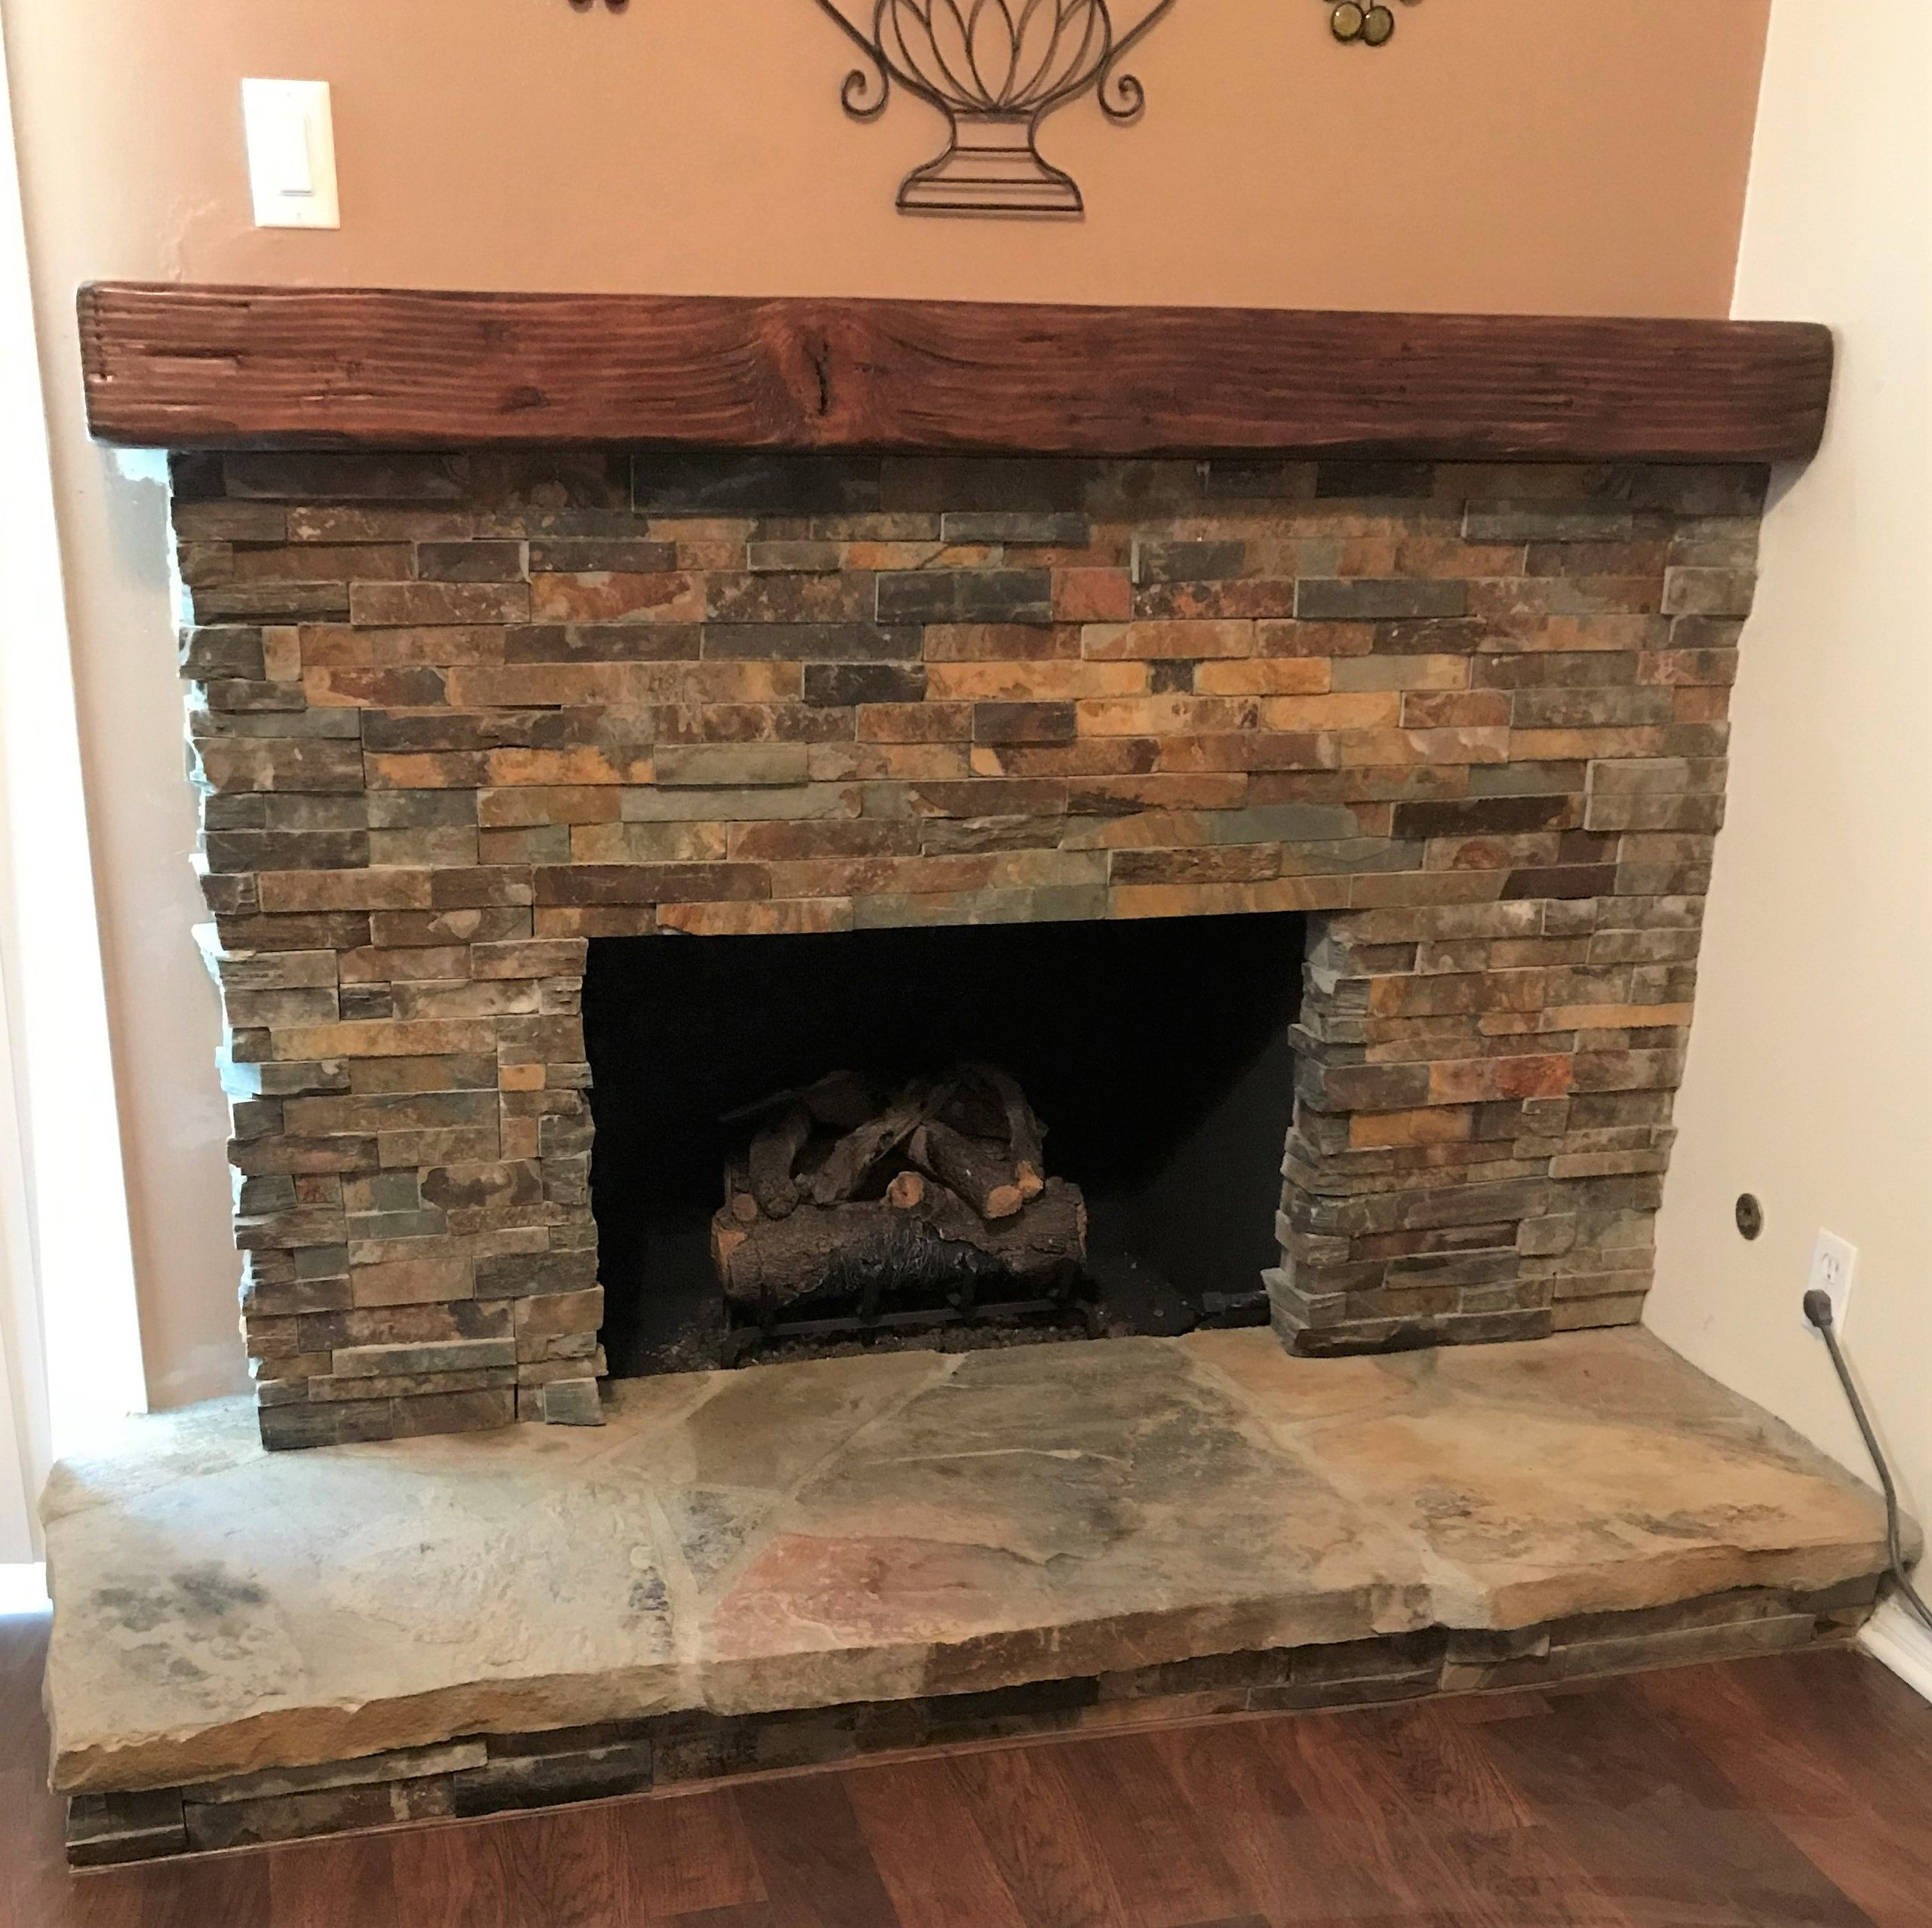 Fireplace Mantel Made From Reclaimed Wood Wood Fireplace Mantel Wood Mantels Reclaimed Wood Mantel